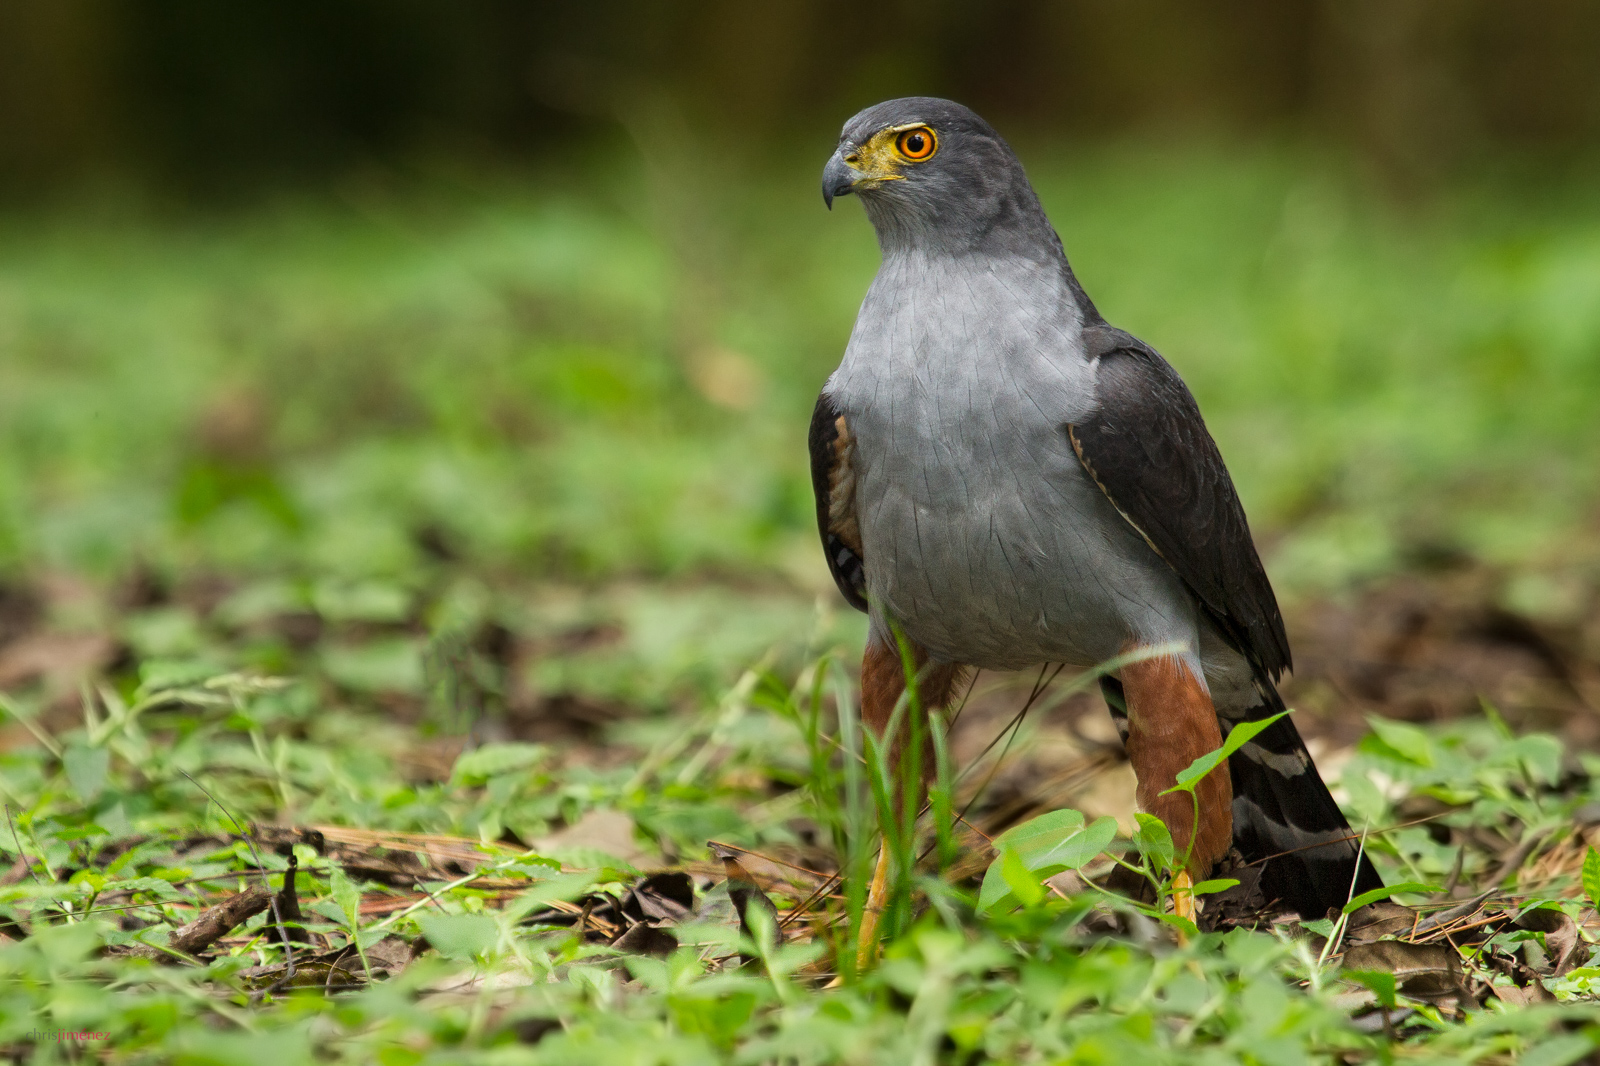 Bicoloured Hawk (Accipiter bicolor) at Carrizal, Costa Rica. For more visit http://www.chrisjimenez.net